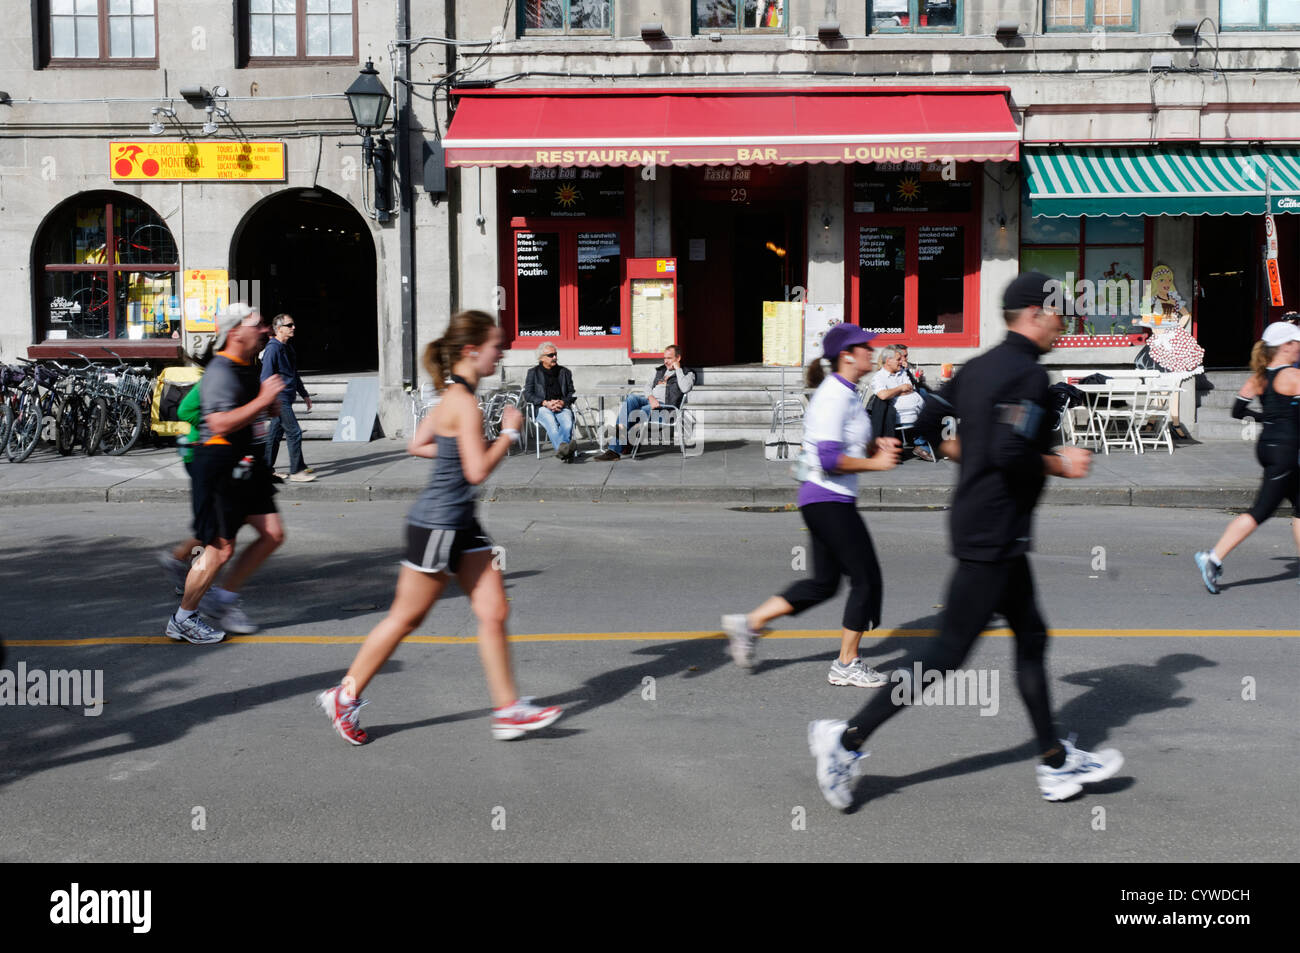 Runners in the 2012 Montreal marathon - Stock Image